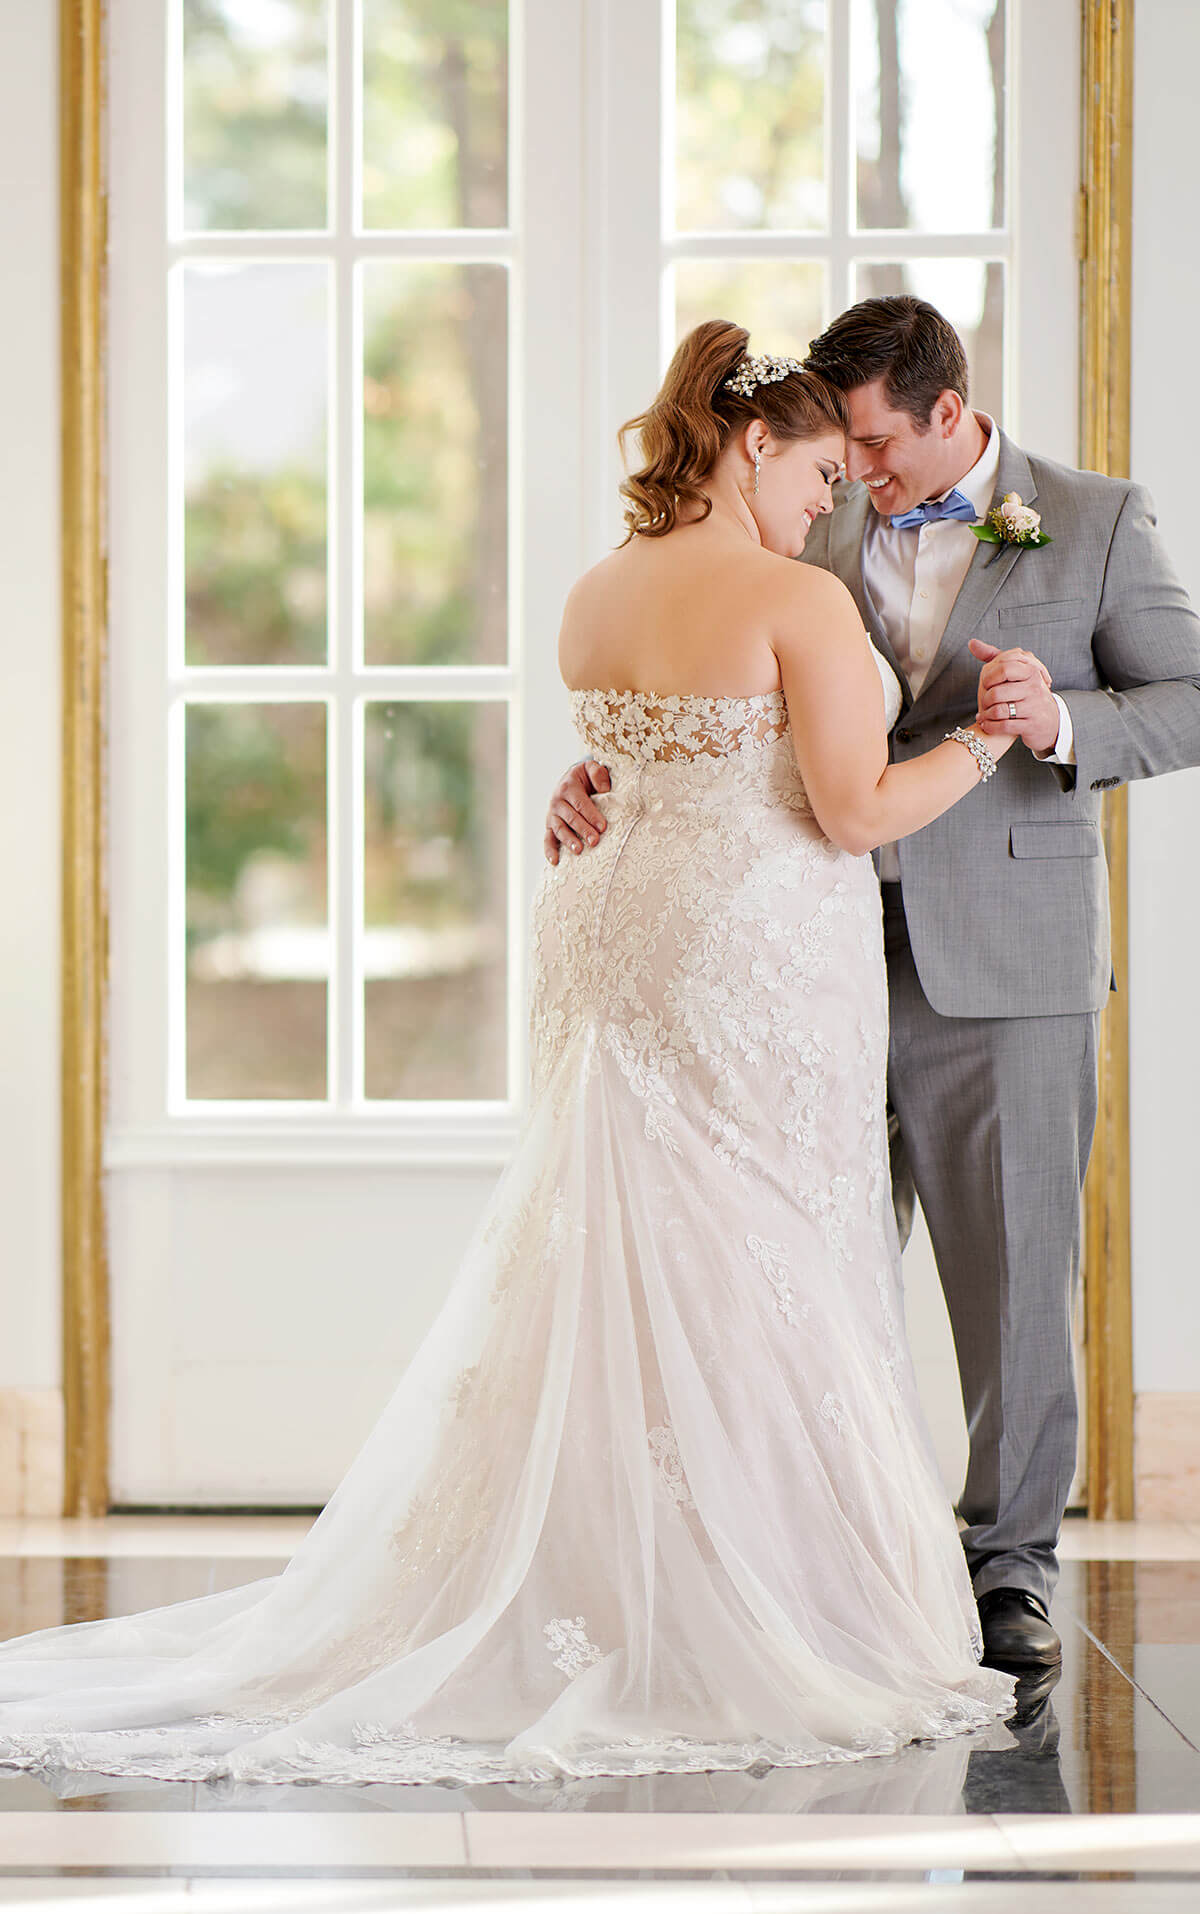 plus sized bride wearing gown with lace back and flared skirt